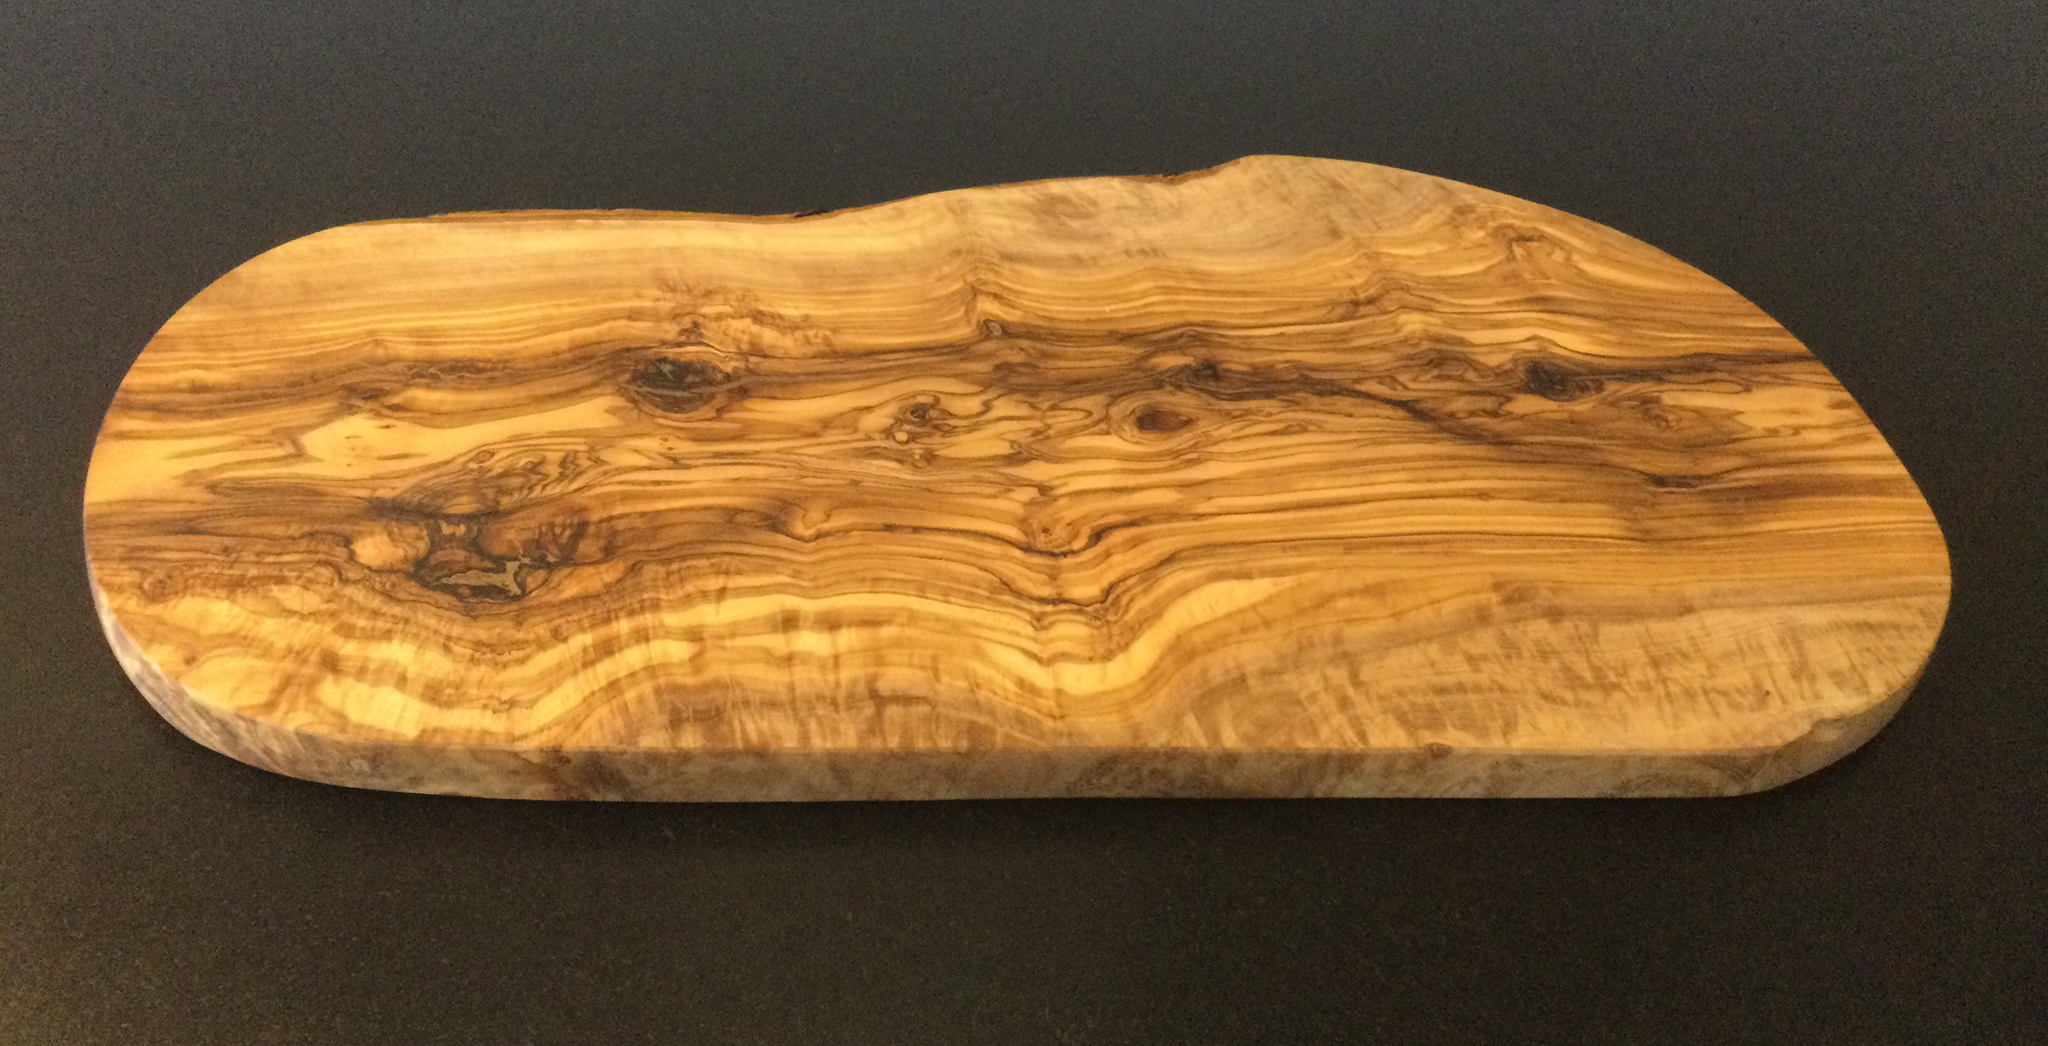 Olive wood: Oval serving board.